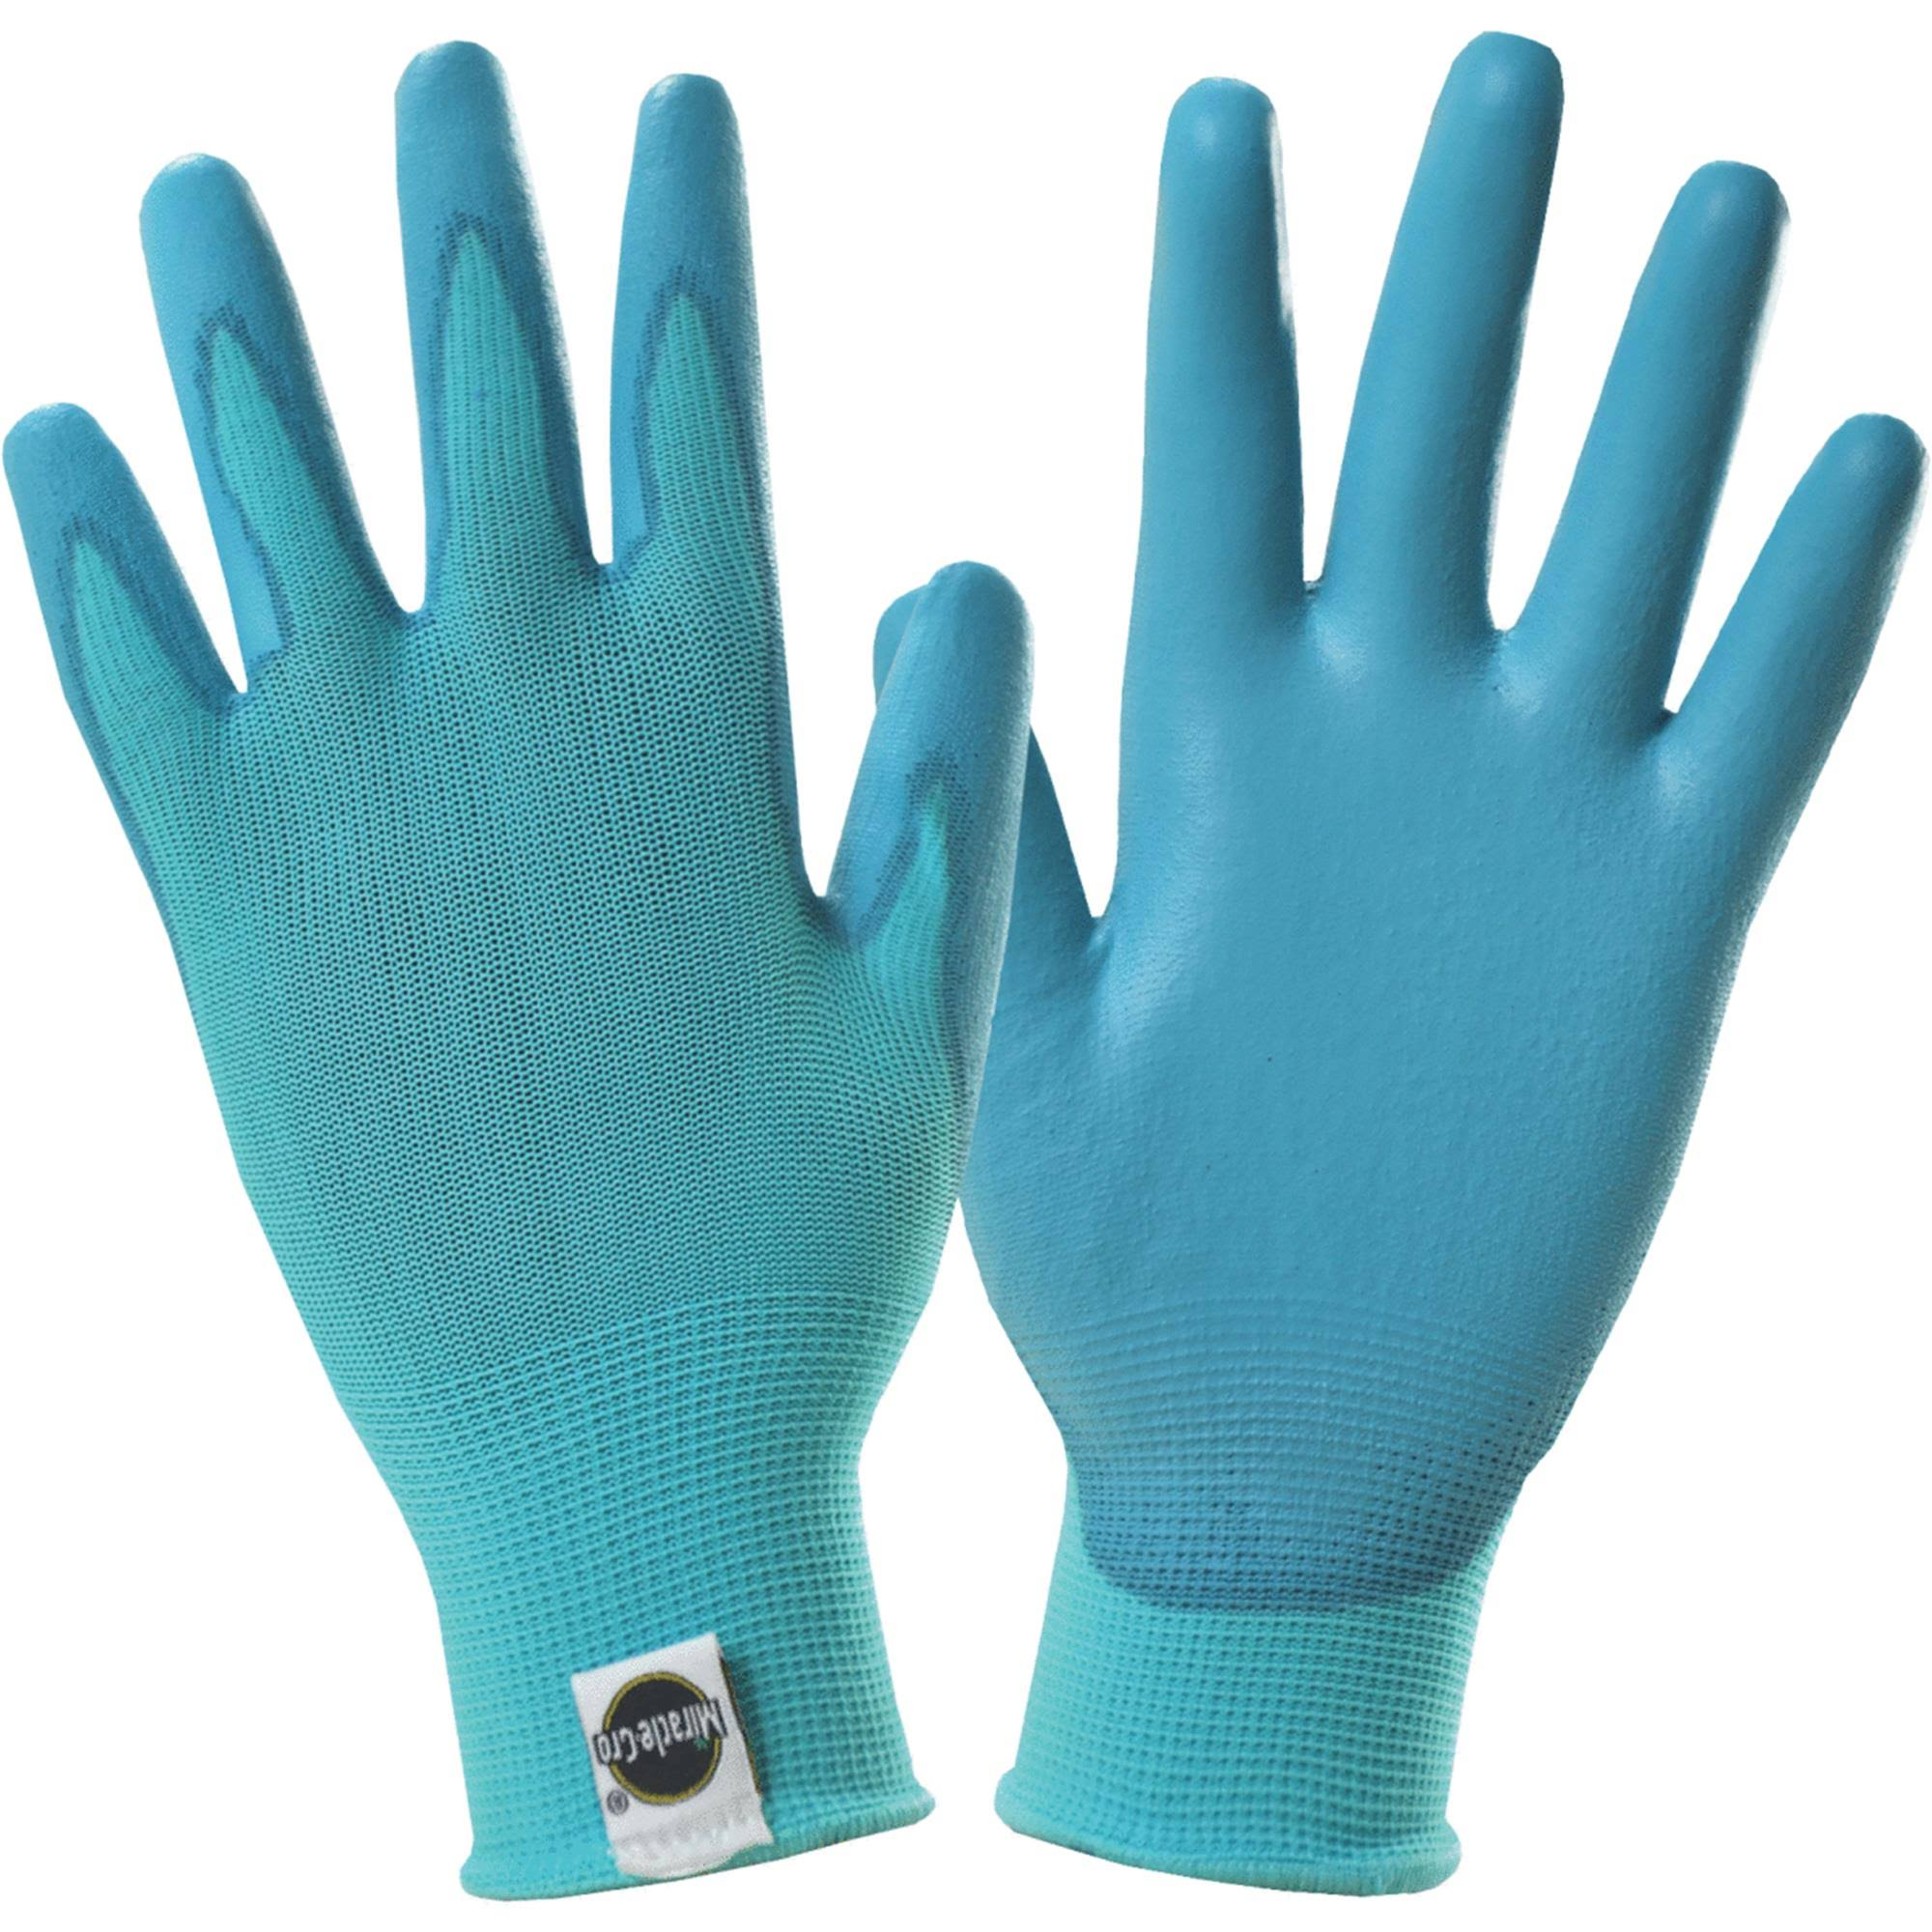 West Chester Miracle-Gro Polyurethane Coated Knit Garden Glove